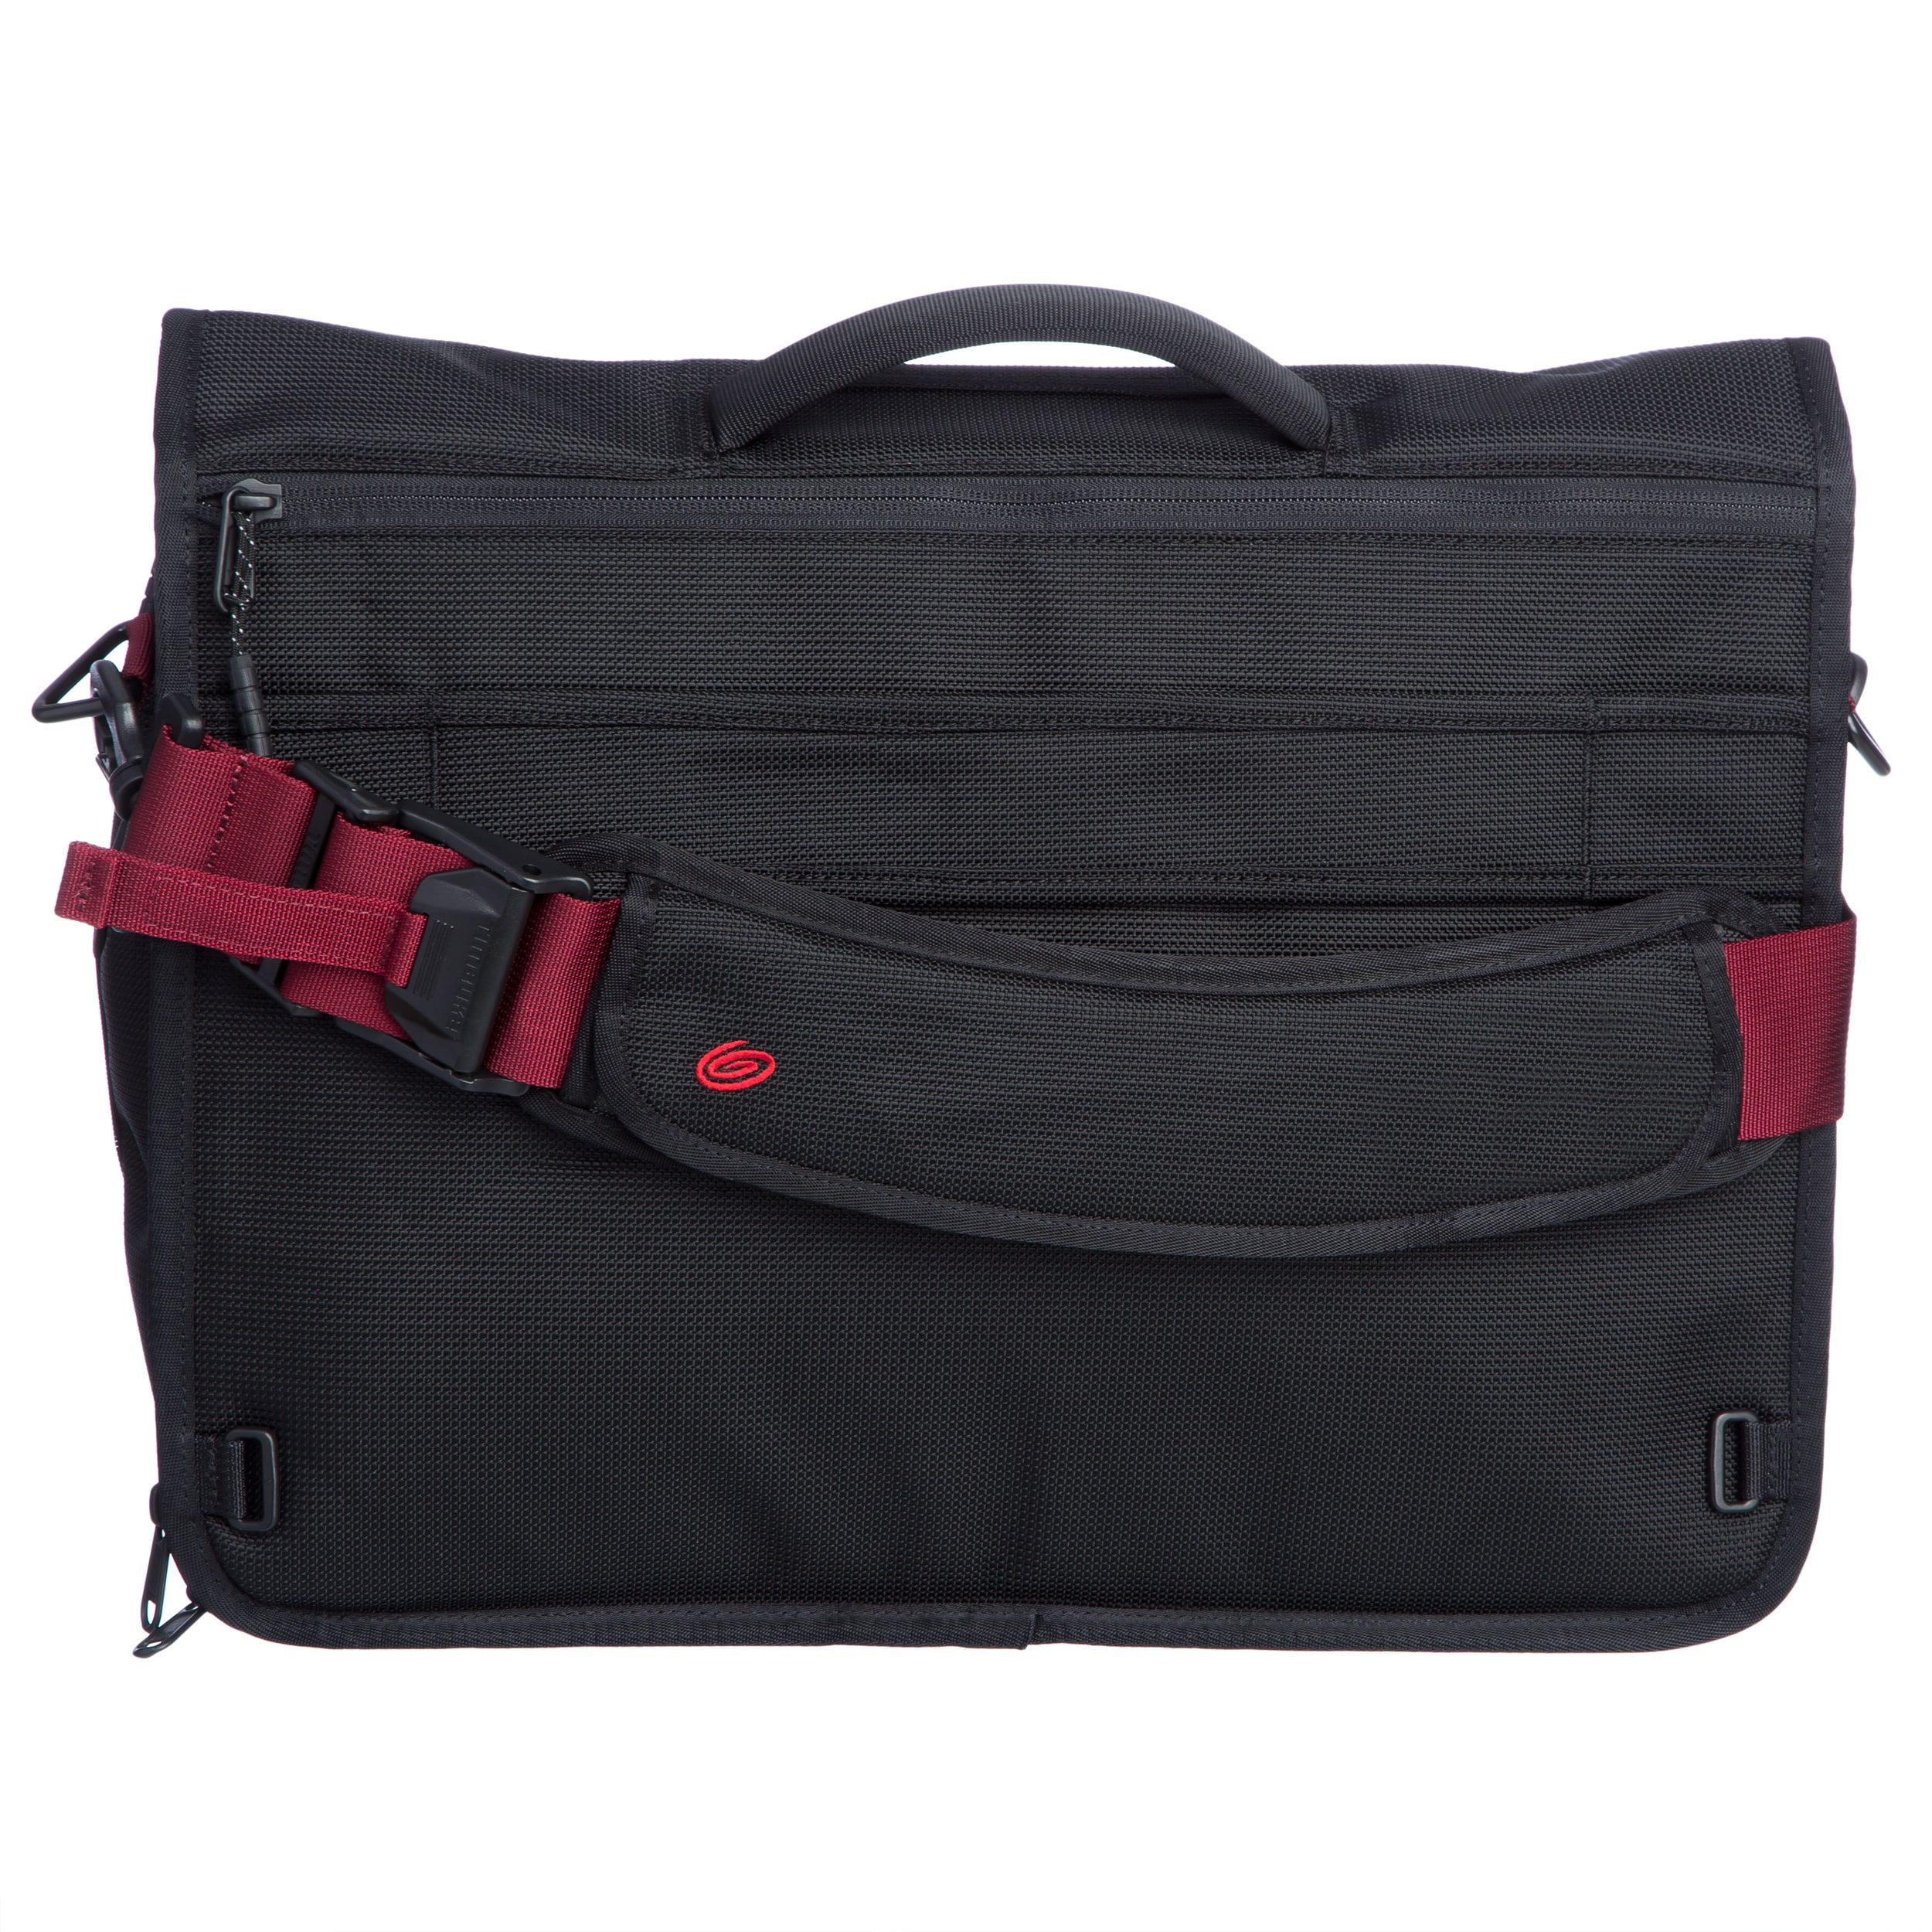 Timbuk2 Small Black Red Devil Command Messenger Bag Free Shipping Today 10900165